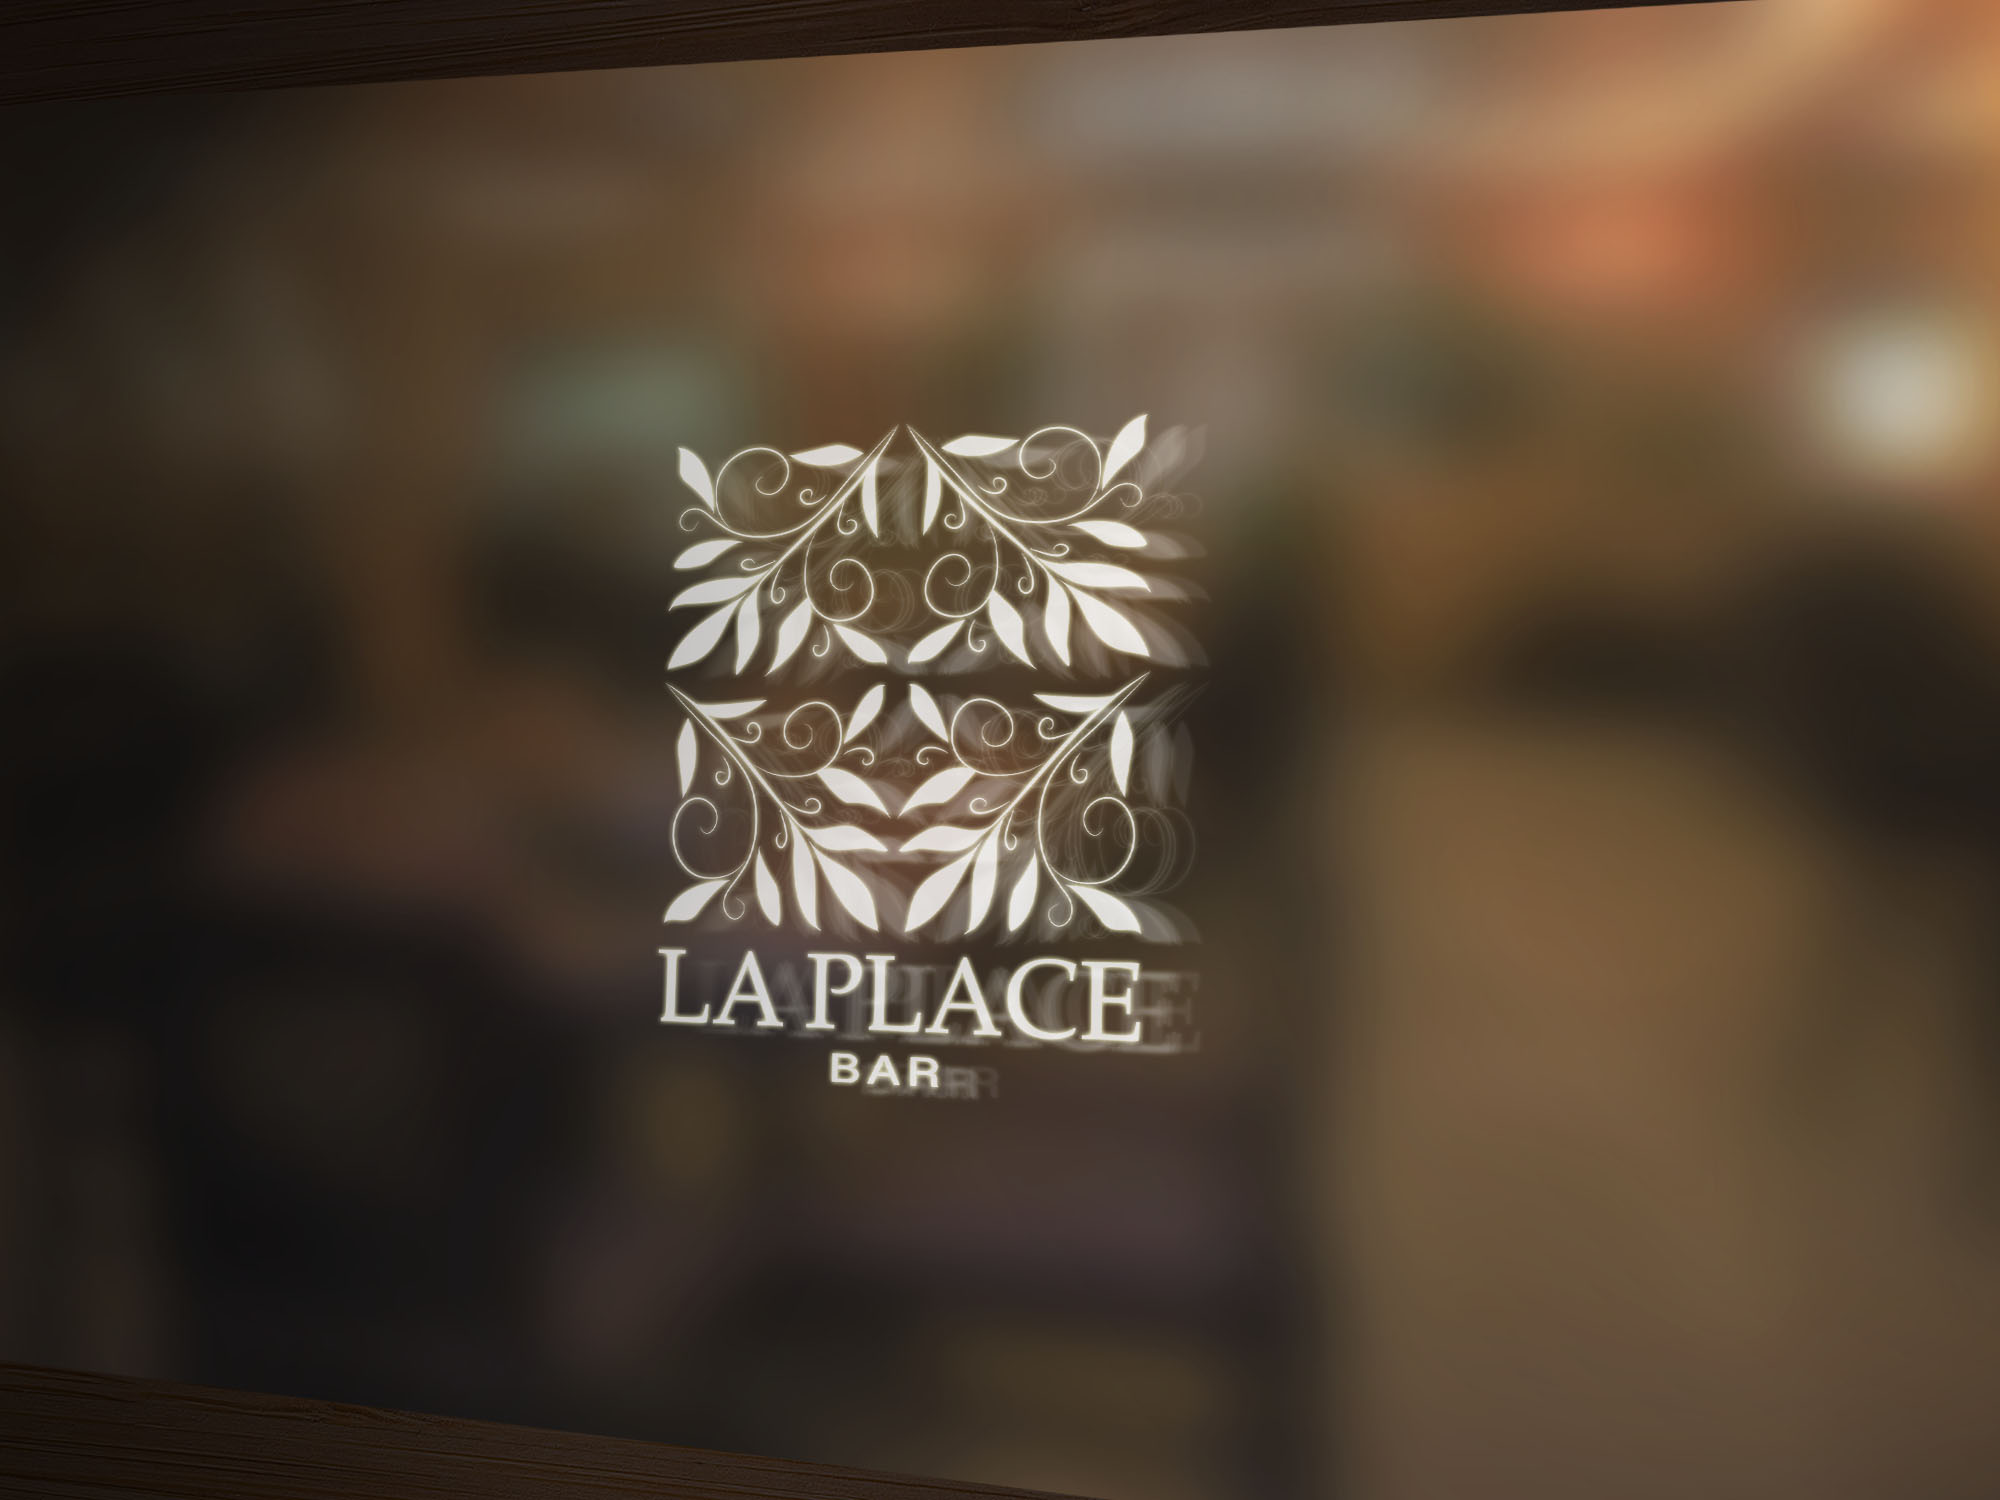 Bar La Place - Famous for its stand up comedy shows, the bar la place was one of the busiest places at night. The branding design was inspired in Italy and in the French furniture, giving to the place a cozy and fun atmosphere during the time it was in service.  Learn more .